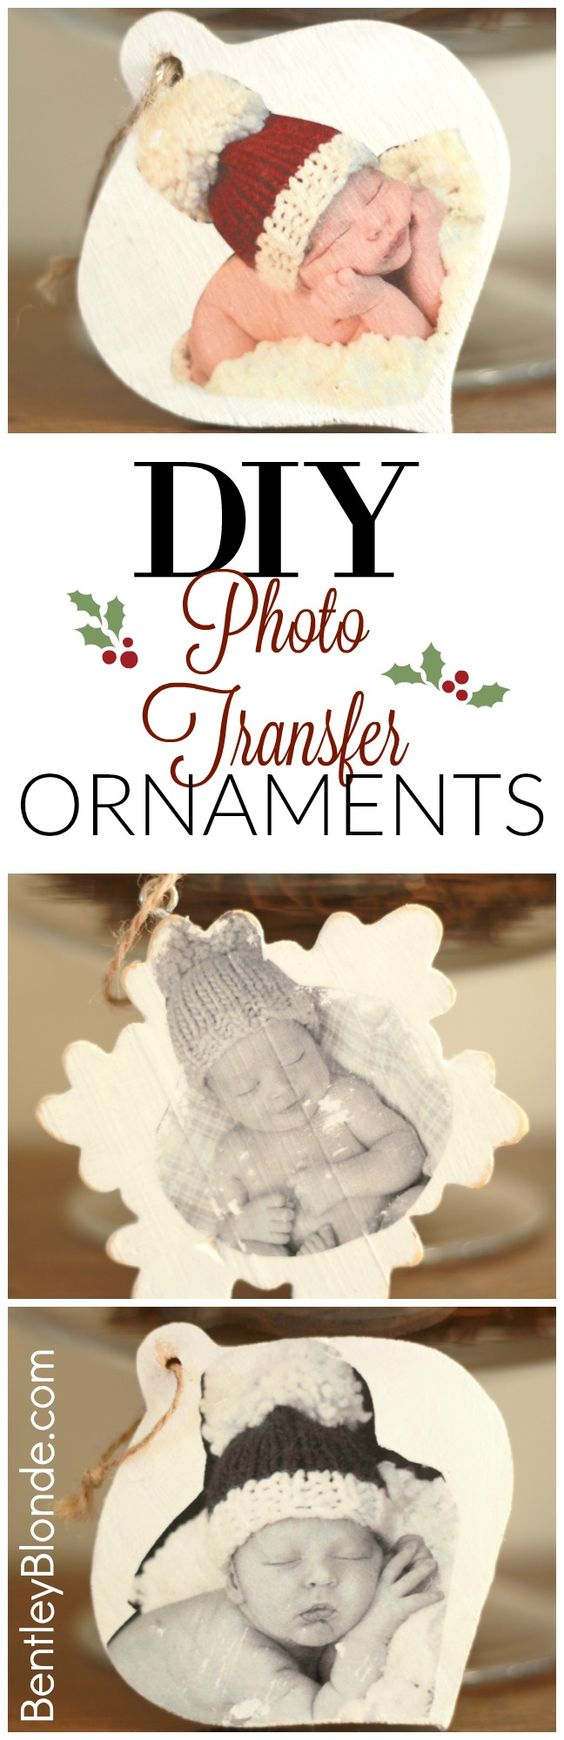 DIY Photo Transfer to Wood Christmas Ornaments.